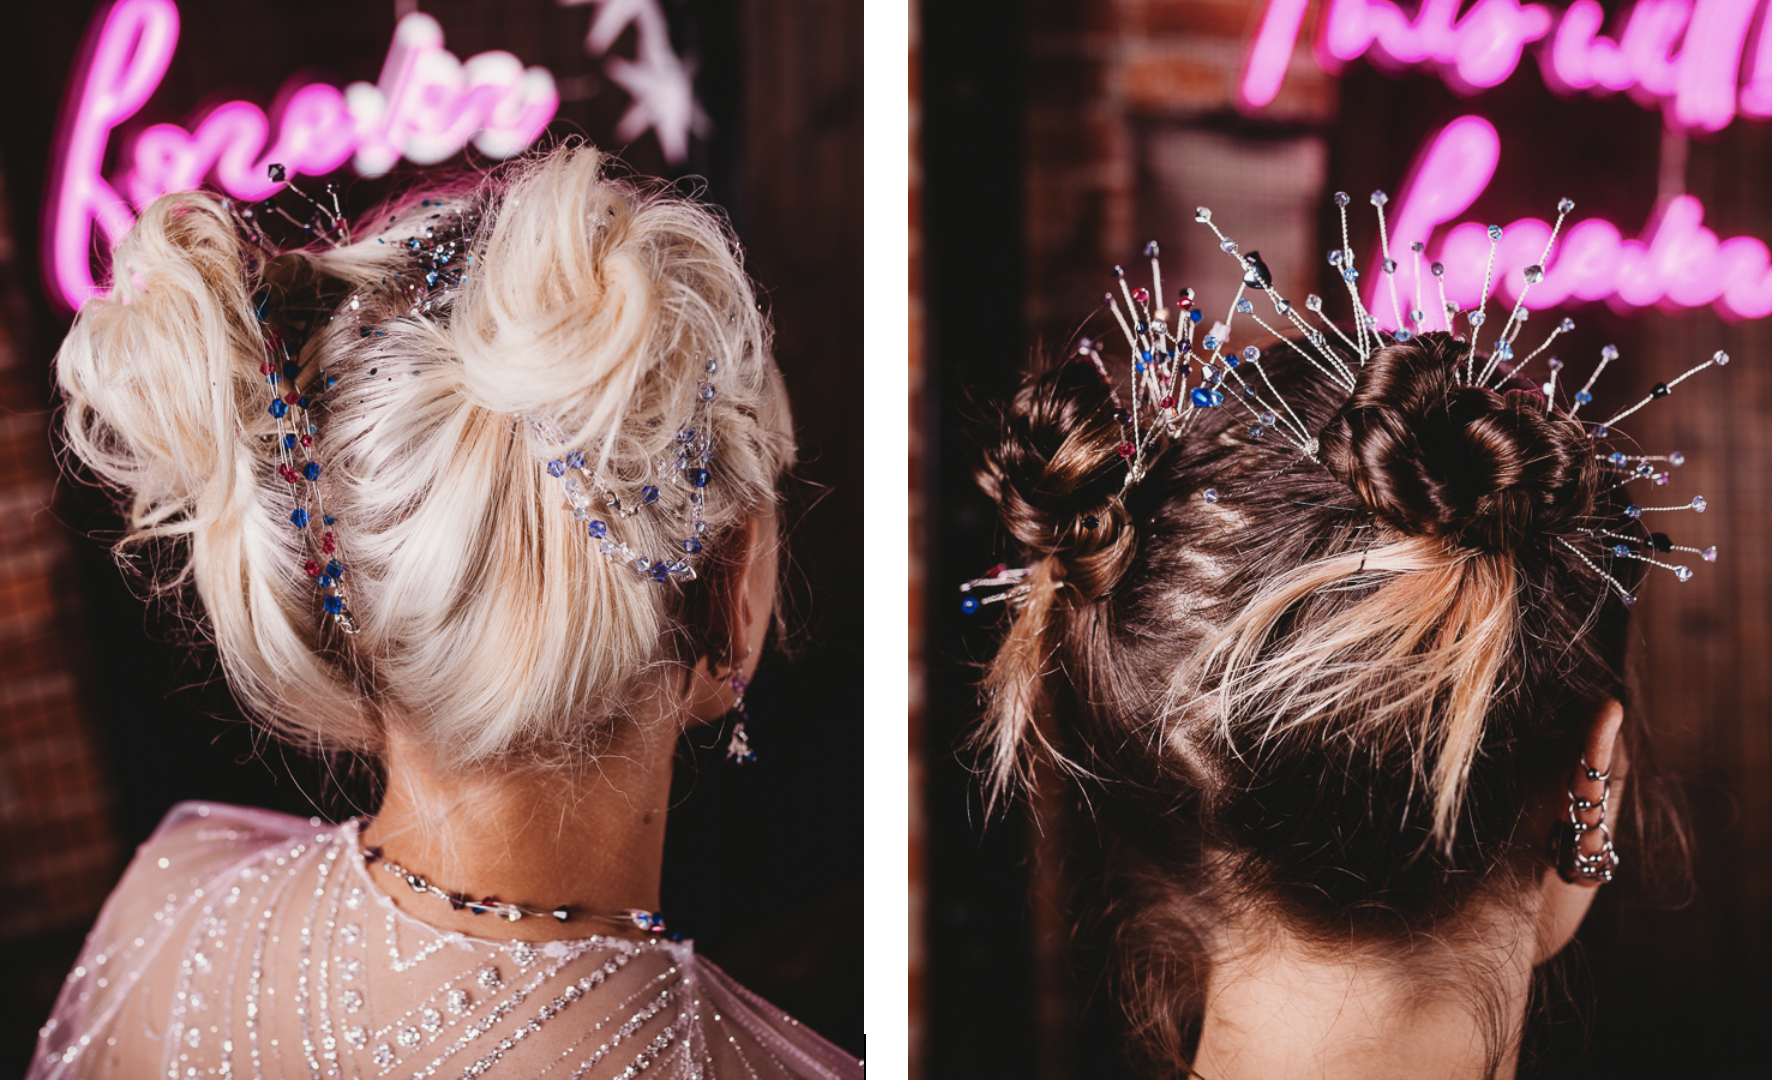 Industrial Galaxy themed wedding inspiration with alternative hair styling and accessories